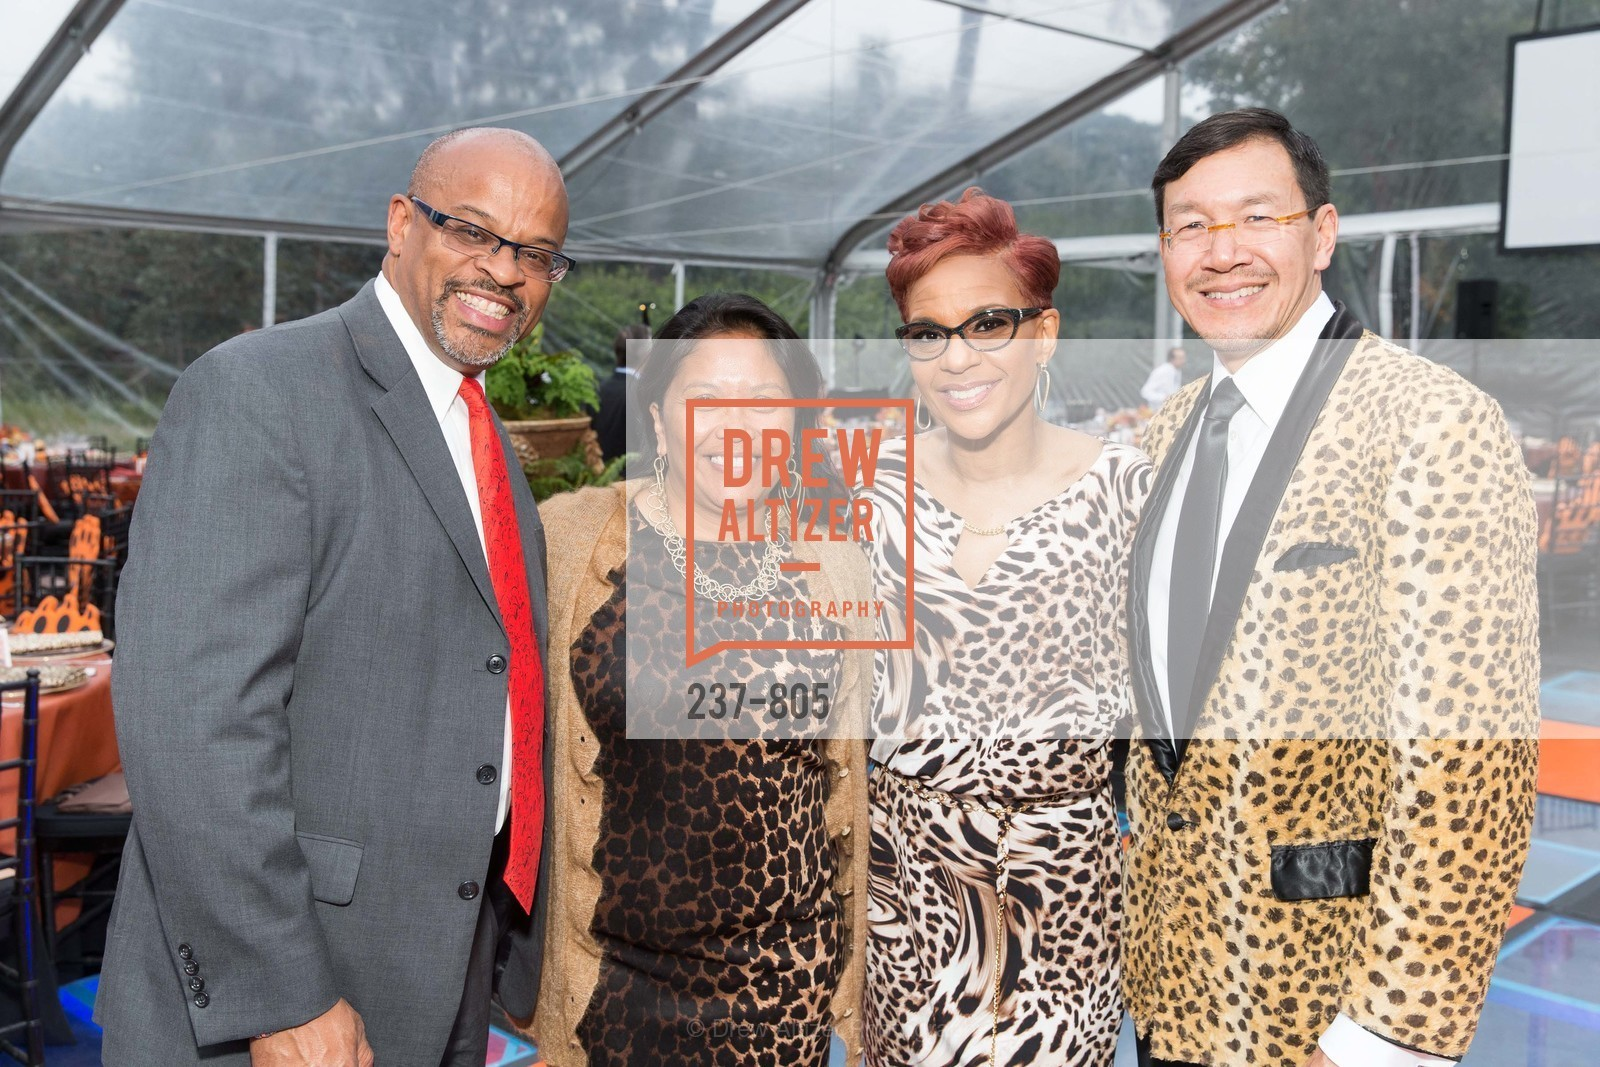 Eric McDonnell, Hyra Mendoza, Renel Brooks-Moon, Timothy Wu, ZOOFEST 2015, US, April 26th, 2015,Drew Altizer, Drew Altizer Photography, full-service agency, private events, San Francisco photographer, photographer california